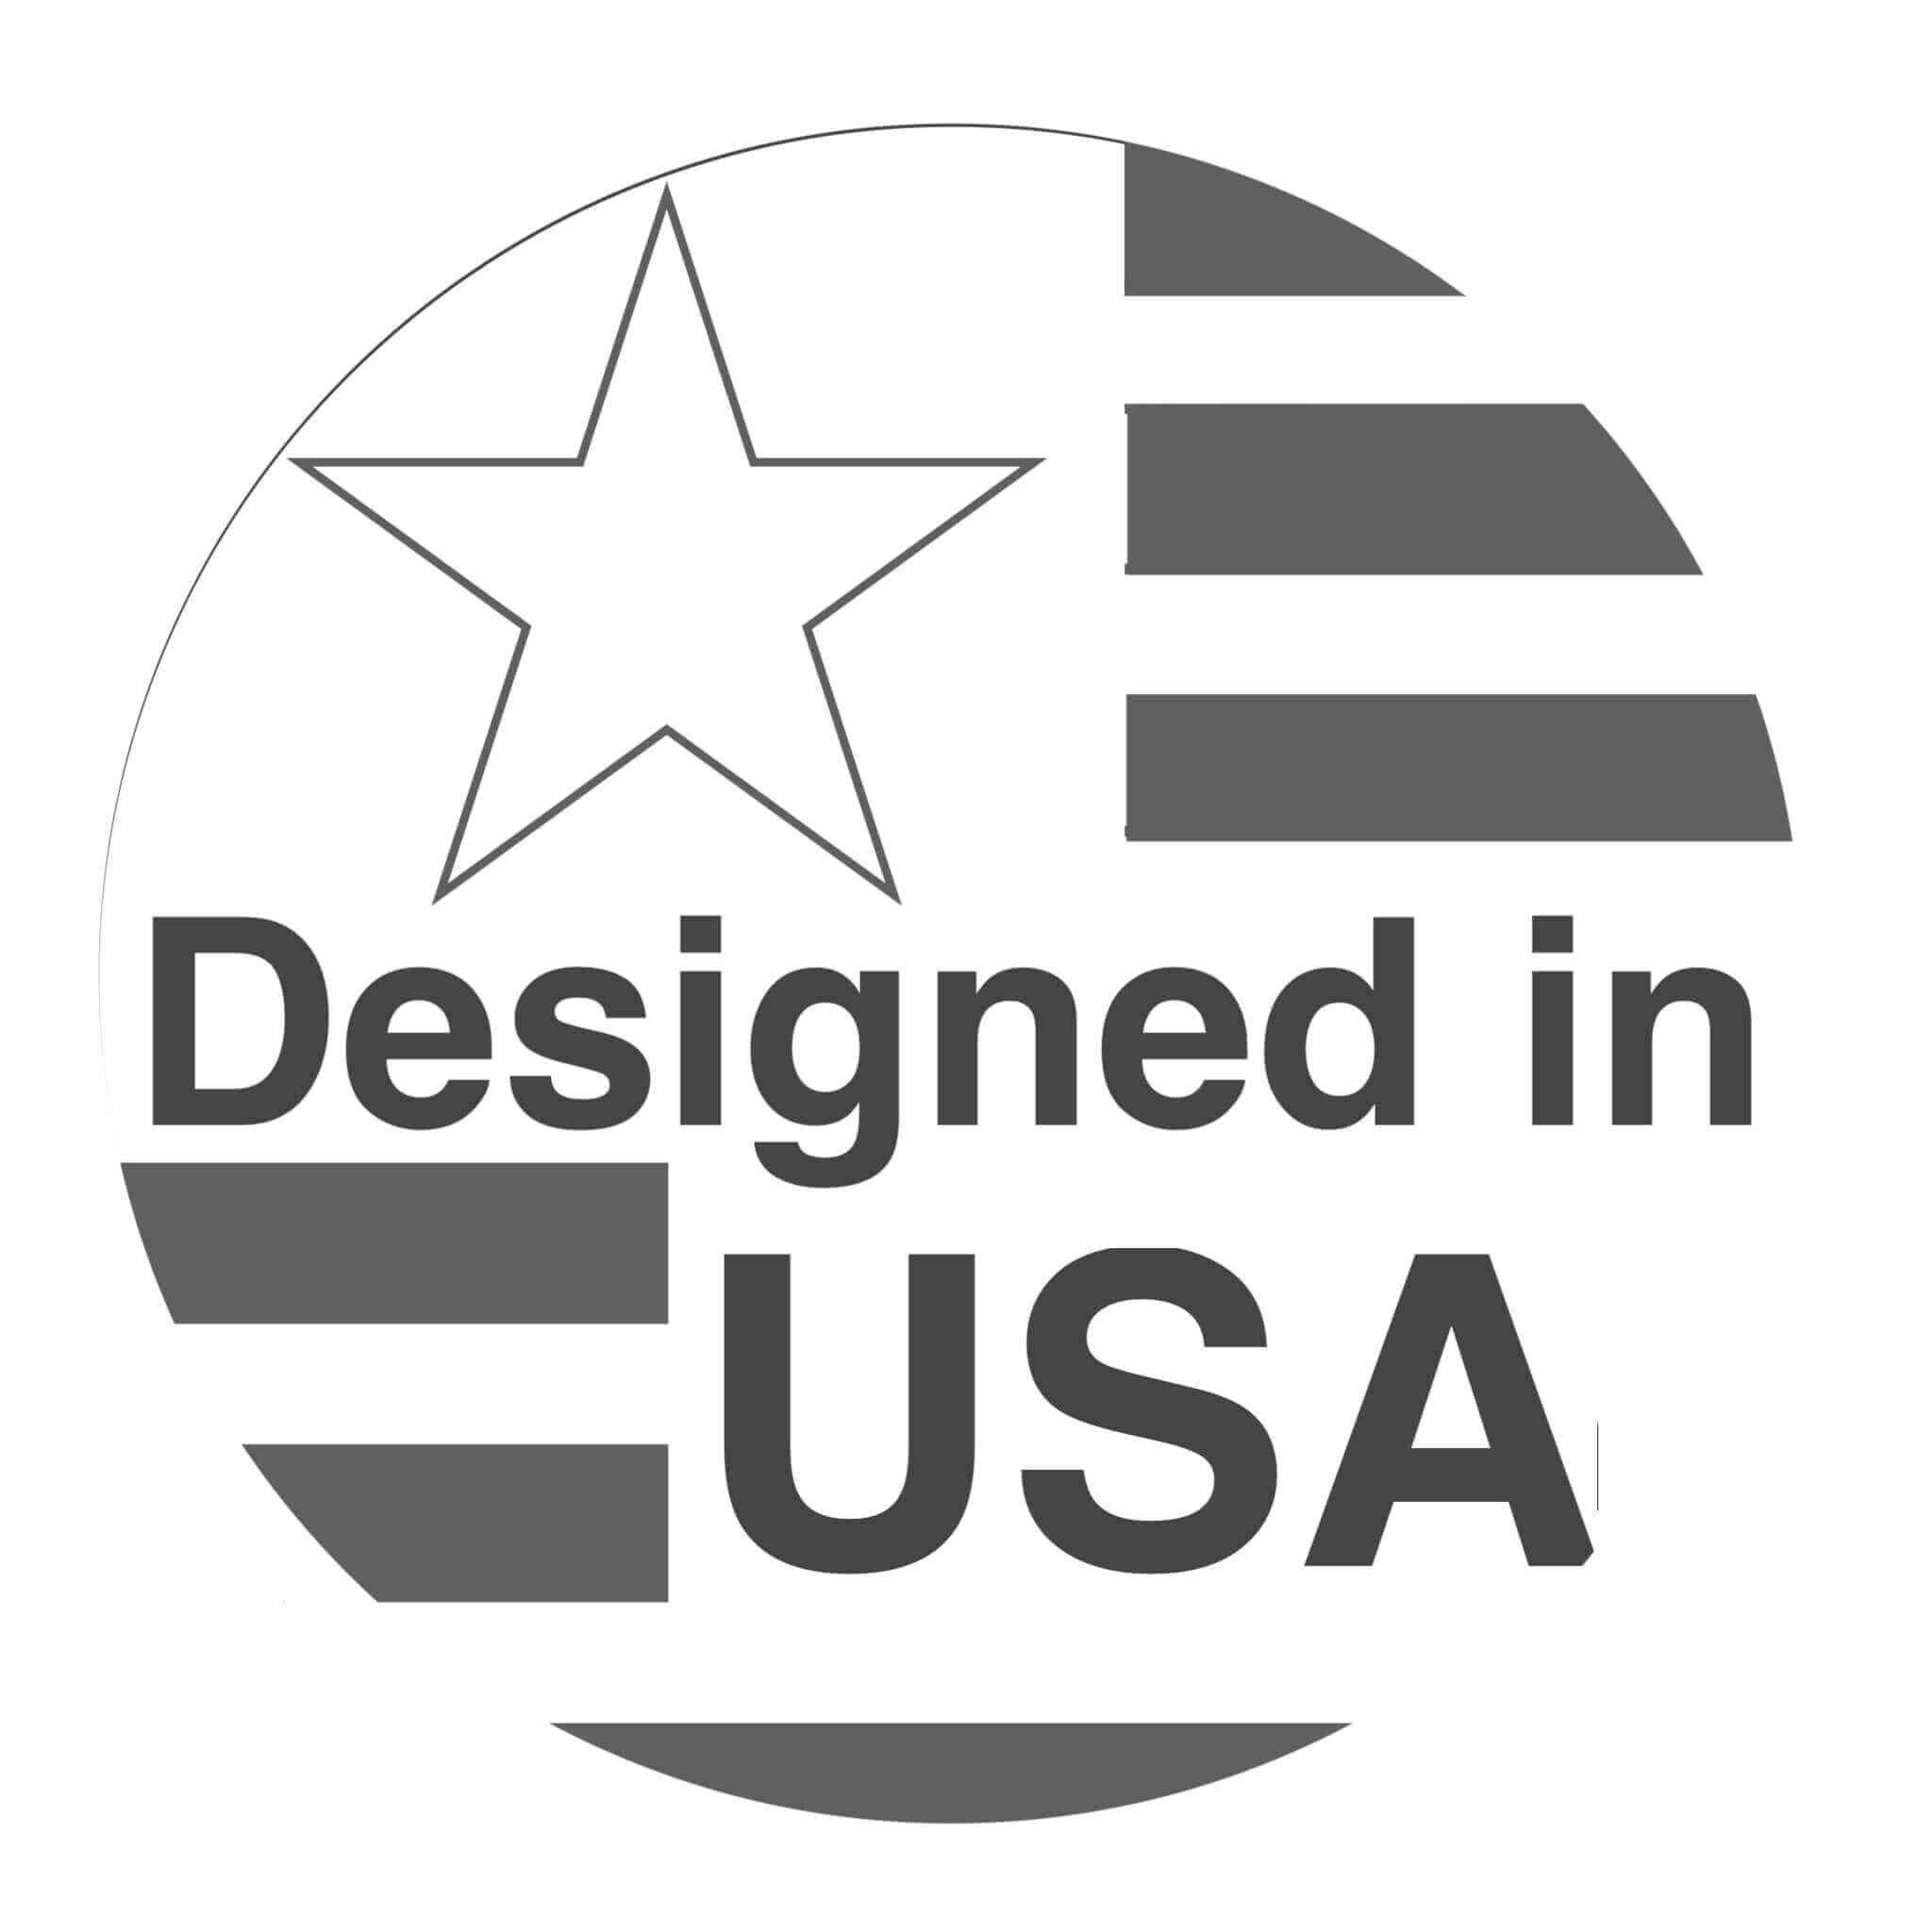 All Canine's Collar goods, premium leather dog collars are design in USA